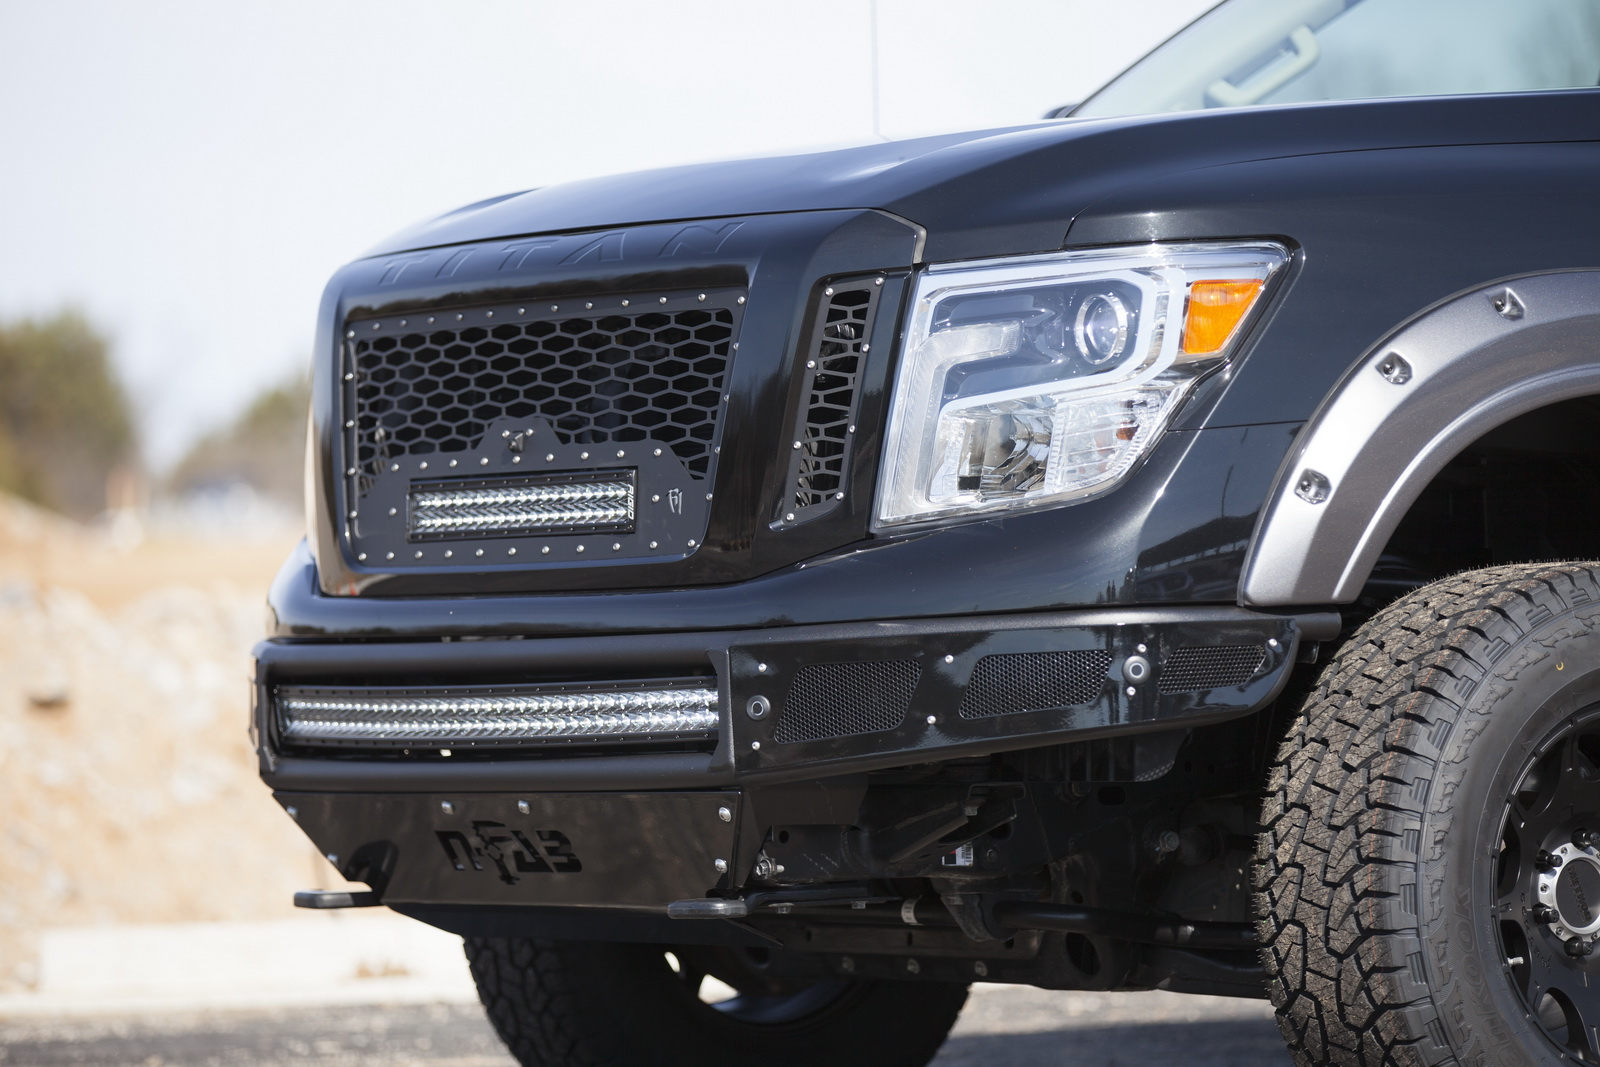 Bumper Guard For Suv >> Nissan Motorsports Bringing Angry Titan XD Pro-4X At The ...